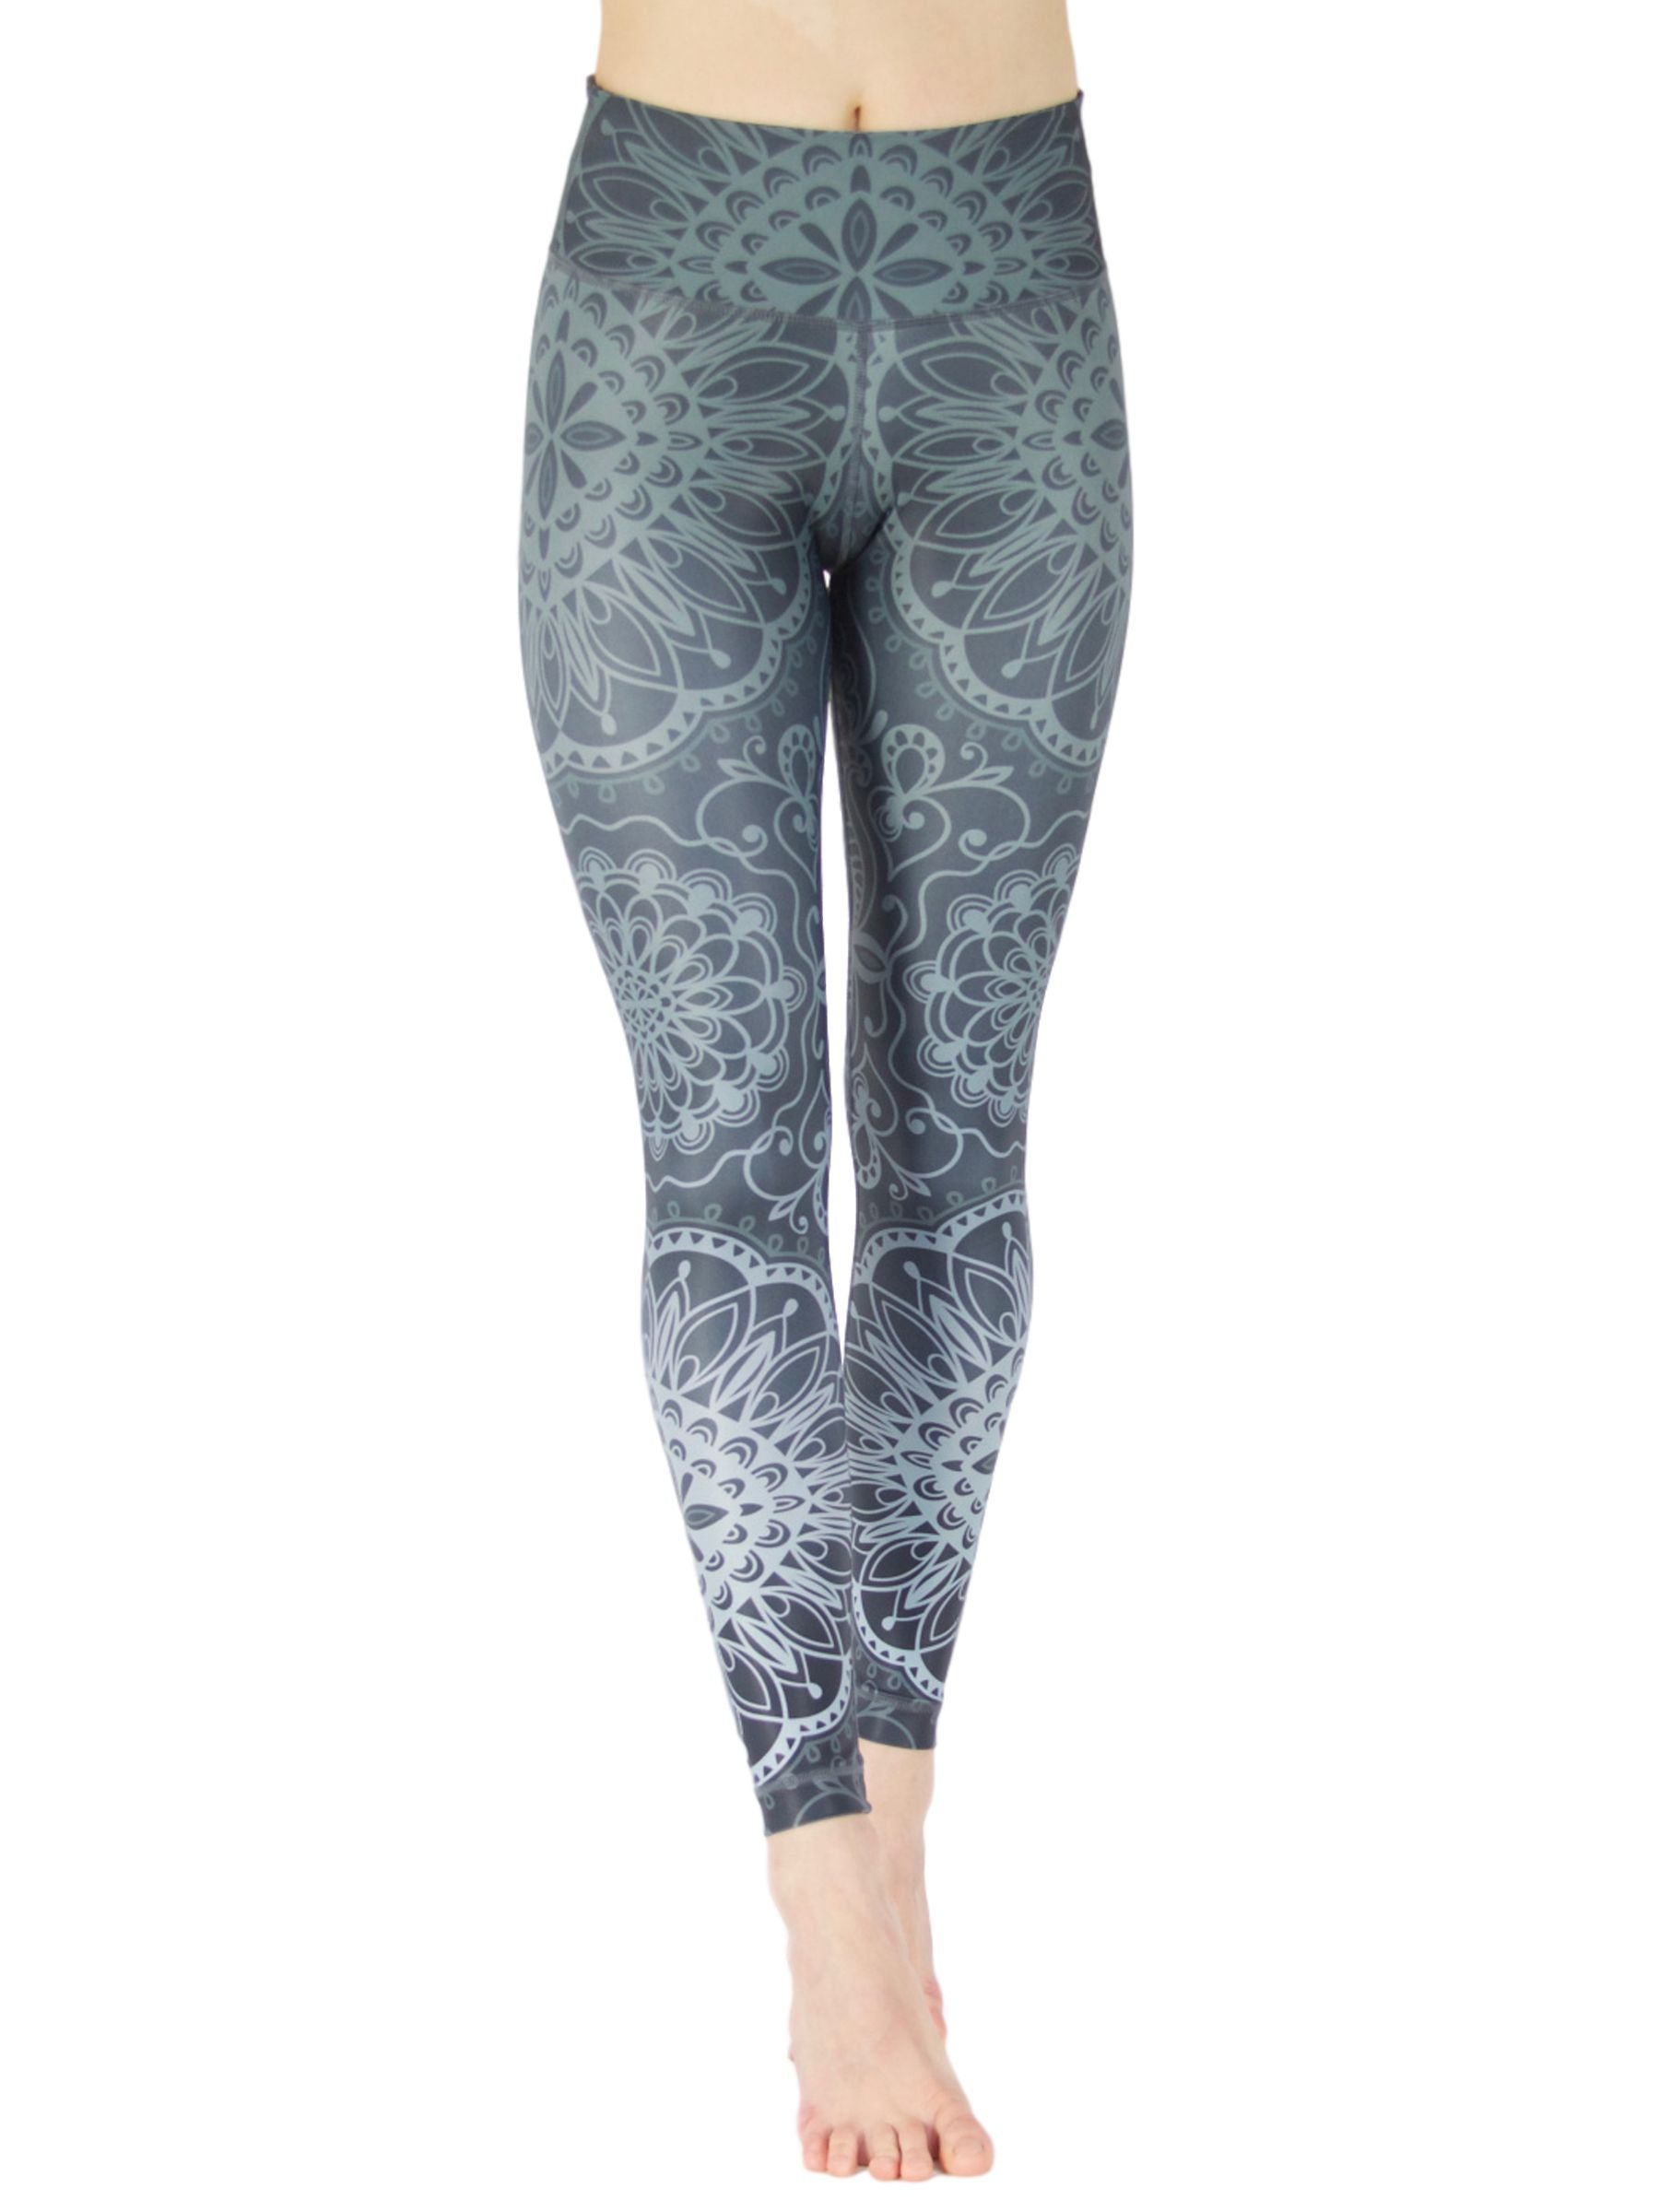 Dreamcatcher by Niyama - High Quality, Yoga Legging for Movement Artists.